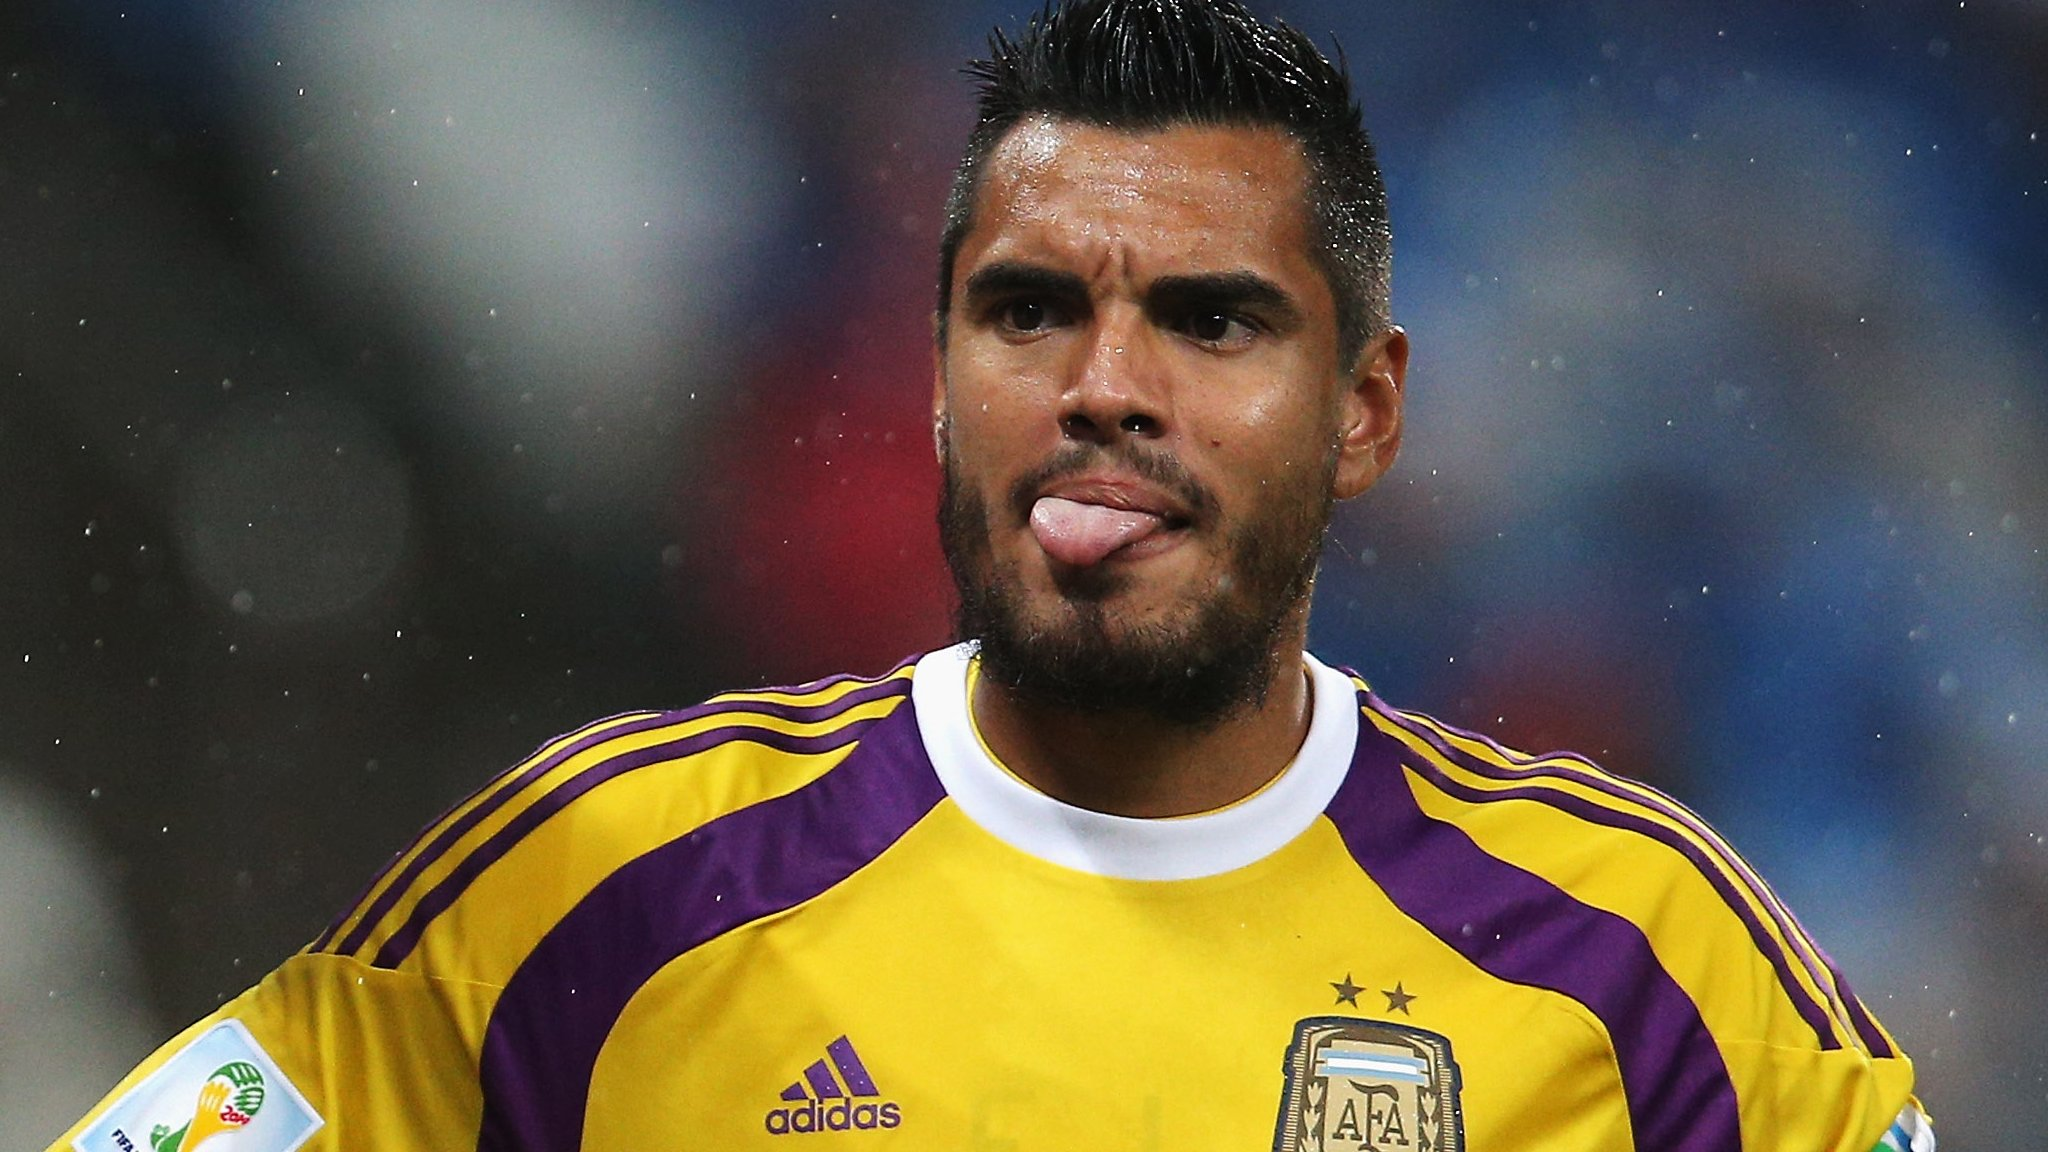 Argentina's Man Utd keeper Romero out of World Cup